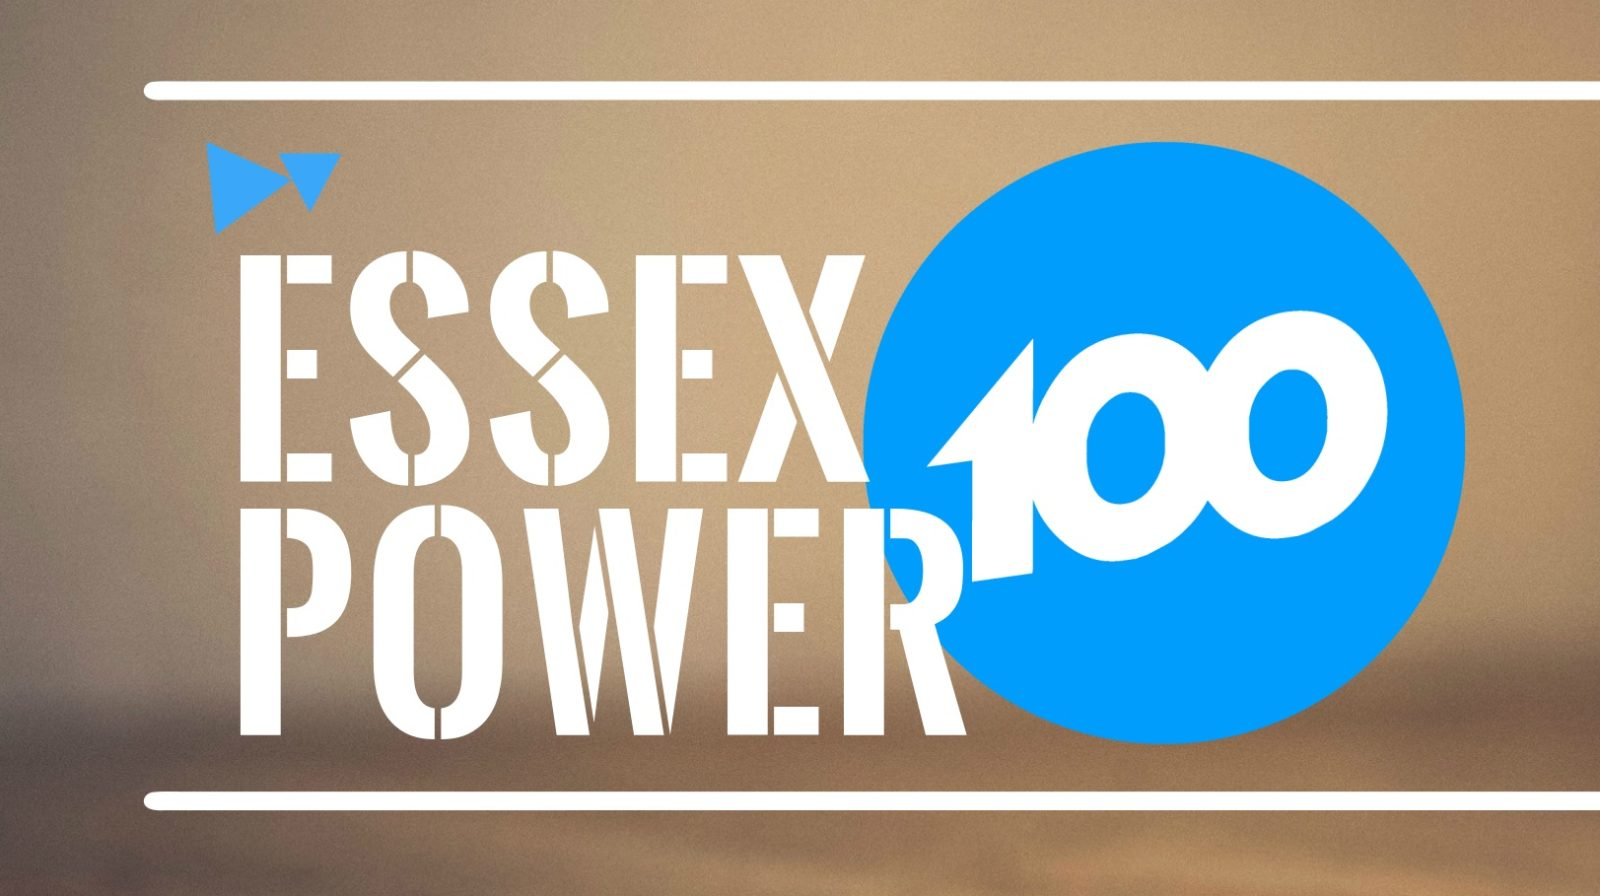 James Placed For Third Year Running In The Essex Power 100 List